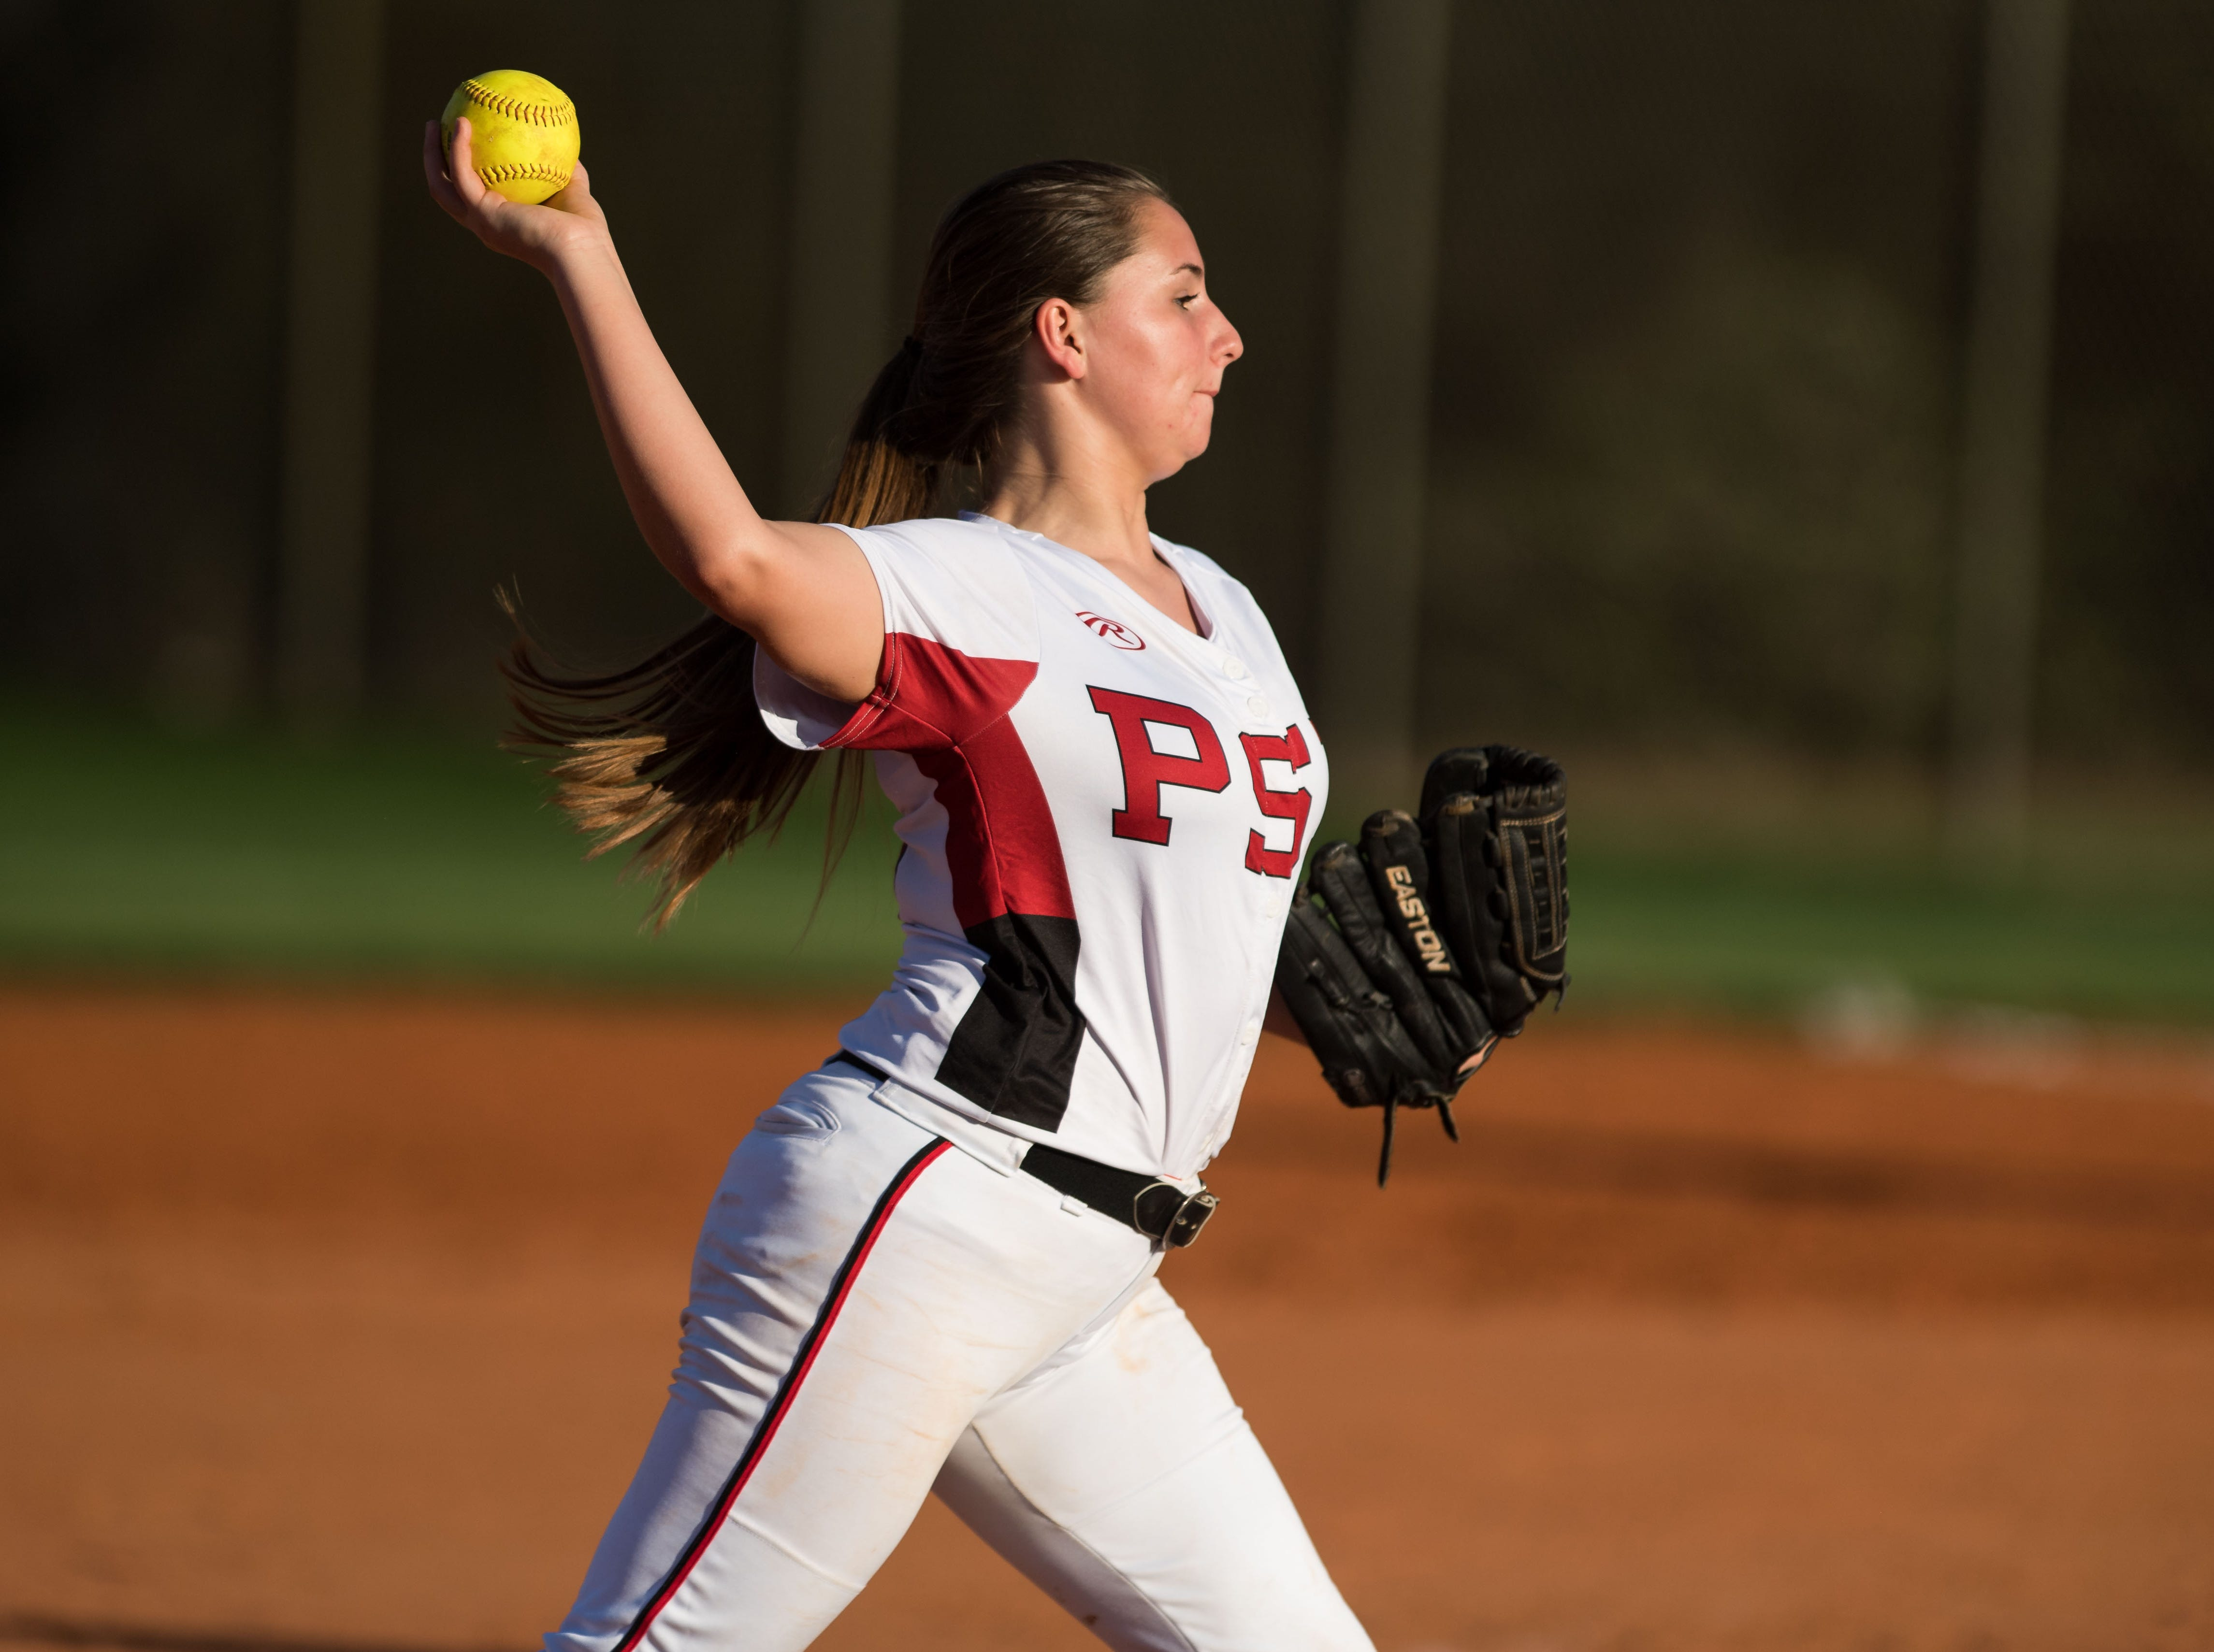 St. Lucie West Centennial plays against Port St. Lucie during the high school softball game Wednesday, Feb. 20, 2019, at St. Lucie West Centennial High School in Port St. Lucie.